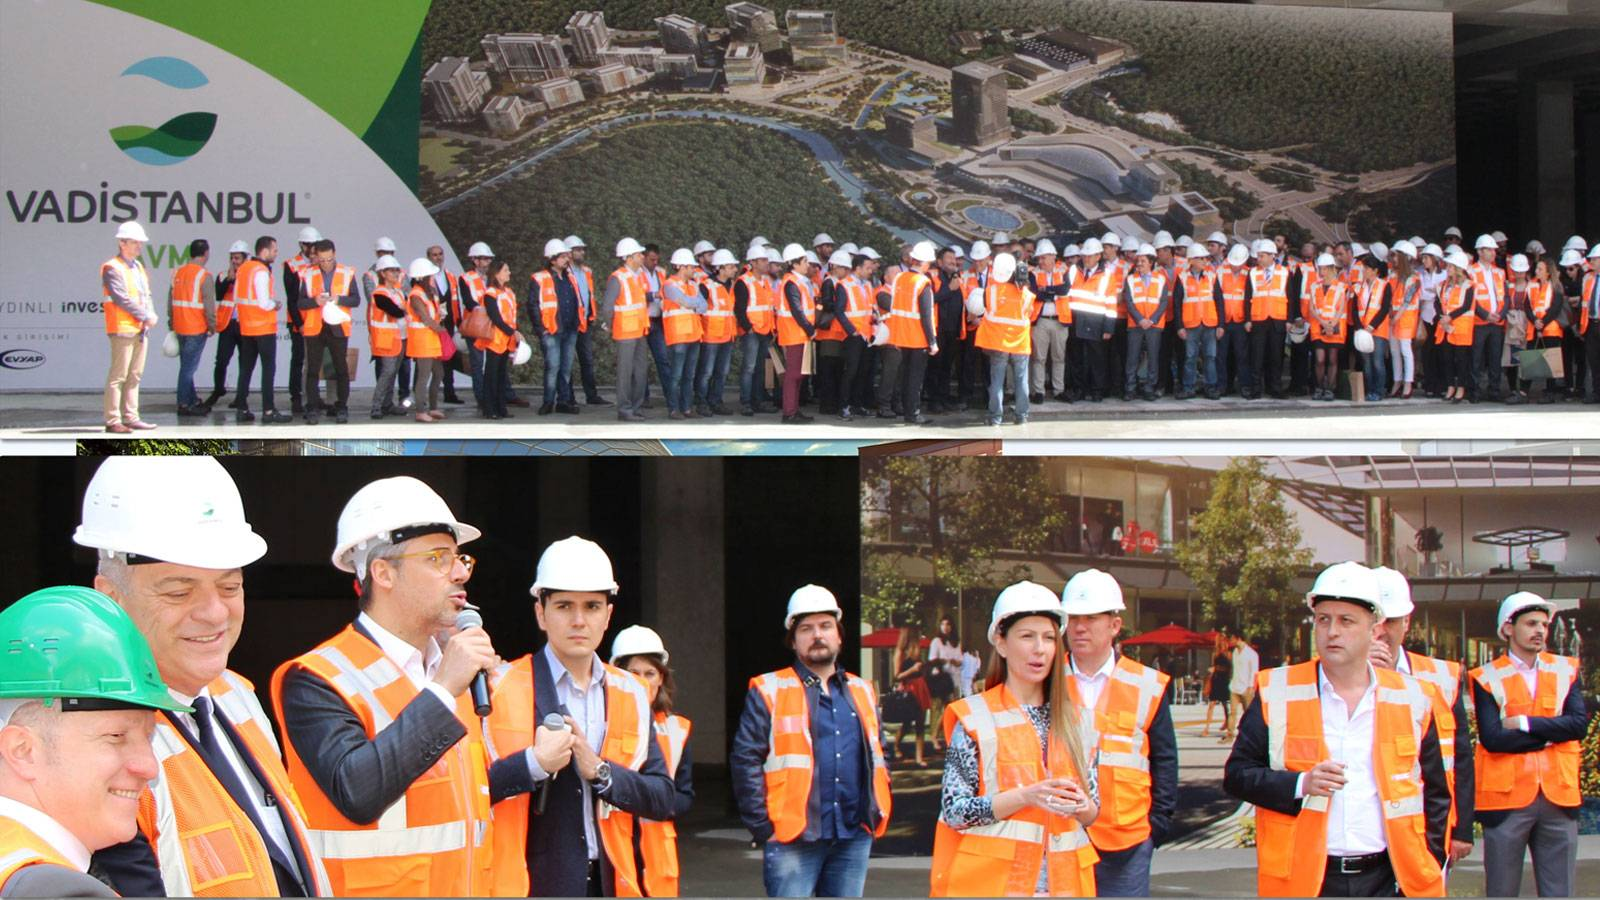 31.05.2016 Launch of Vadistanbul Project's 2nd Phase Retail Part has been realized